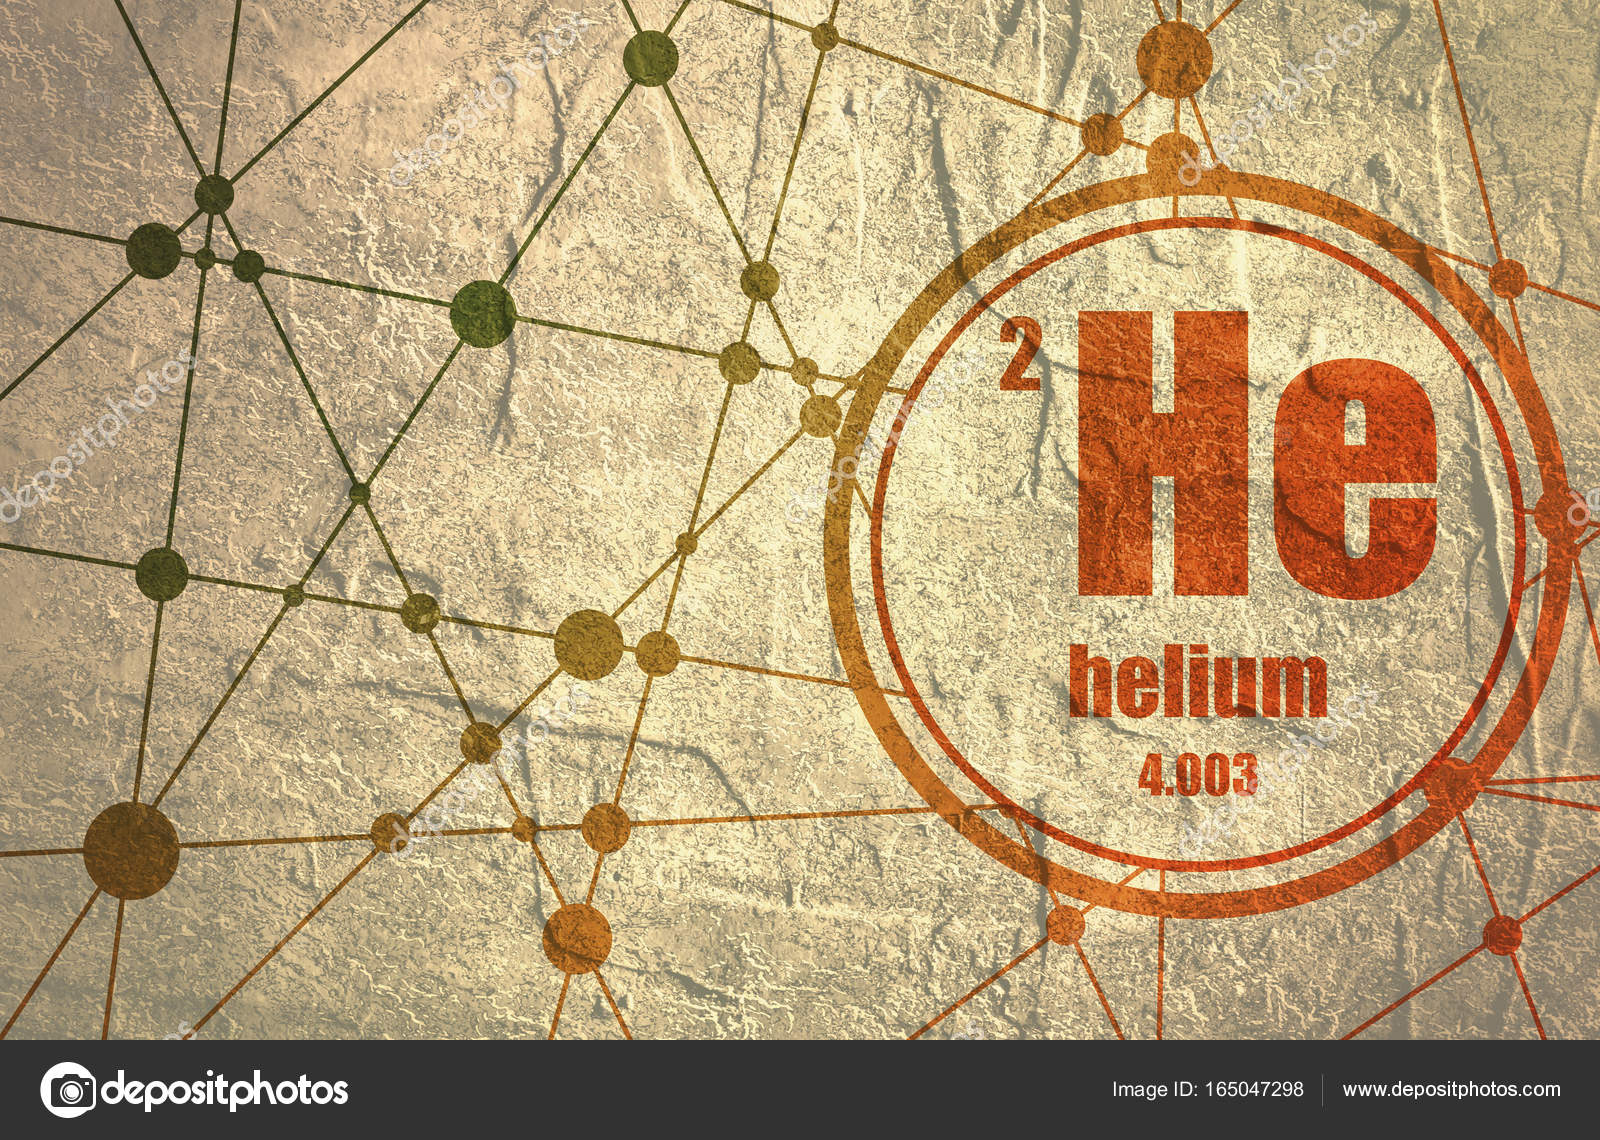 Helium chemical element stock photo jegasra 165047298 helium chemical element sign with atomic number and atomic weight chemical element of periodic table molecule and communication background buycottarizona